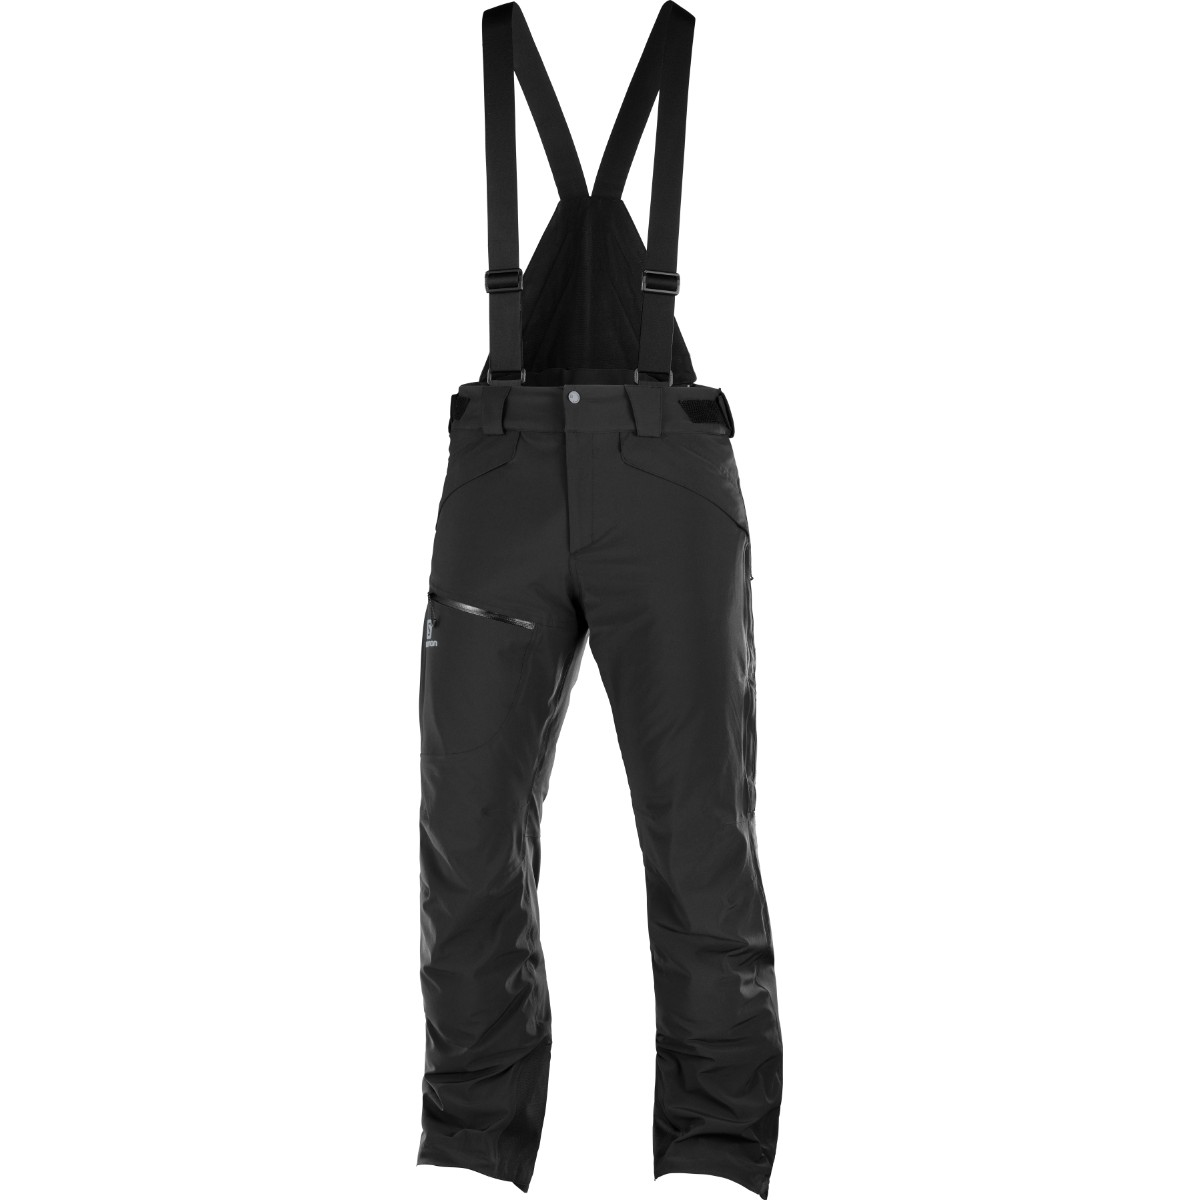 Pantaloni de ski Salomon CHILL OUT BIB - Negru